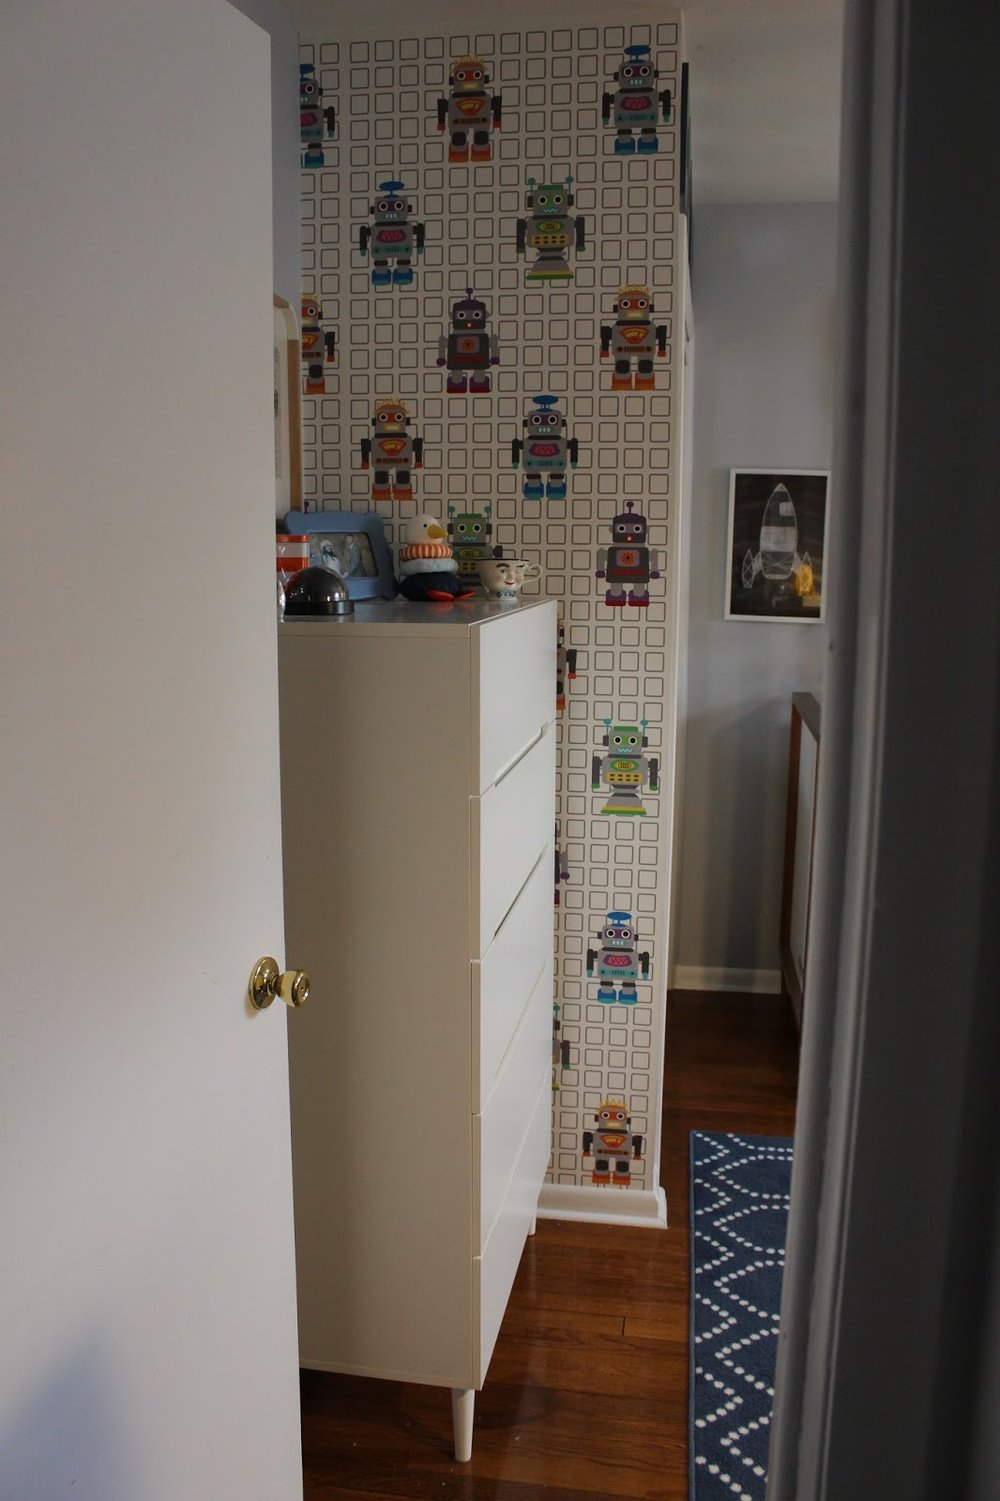 Wallpaper:   Robot by French Bull  (I purchased on Gilt)